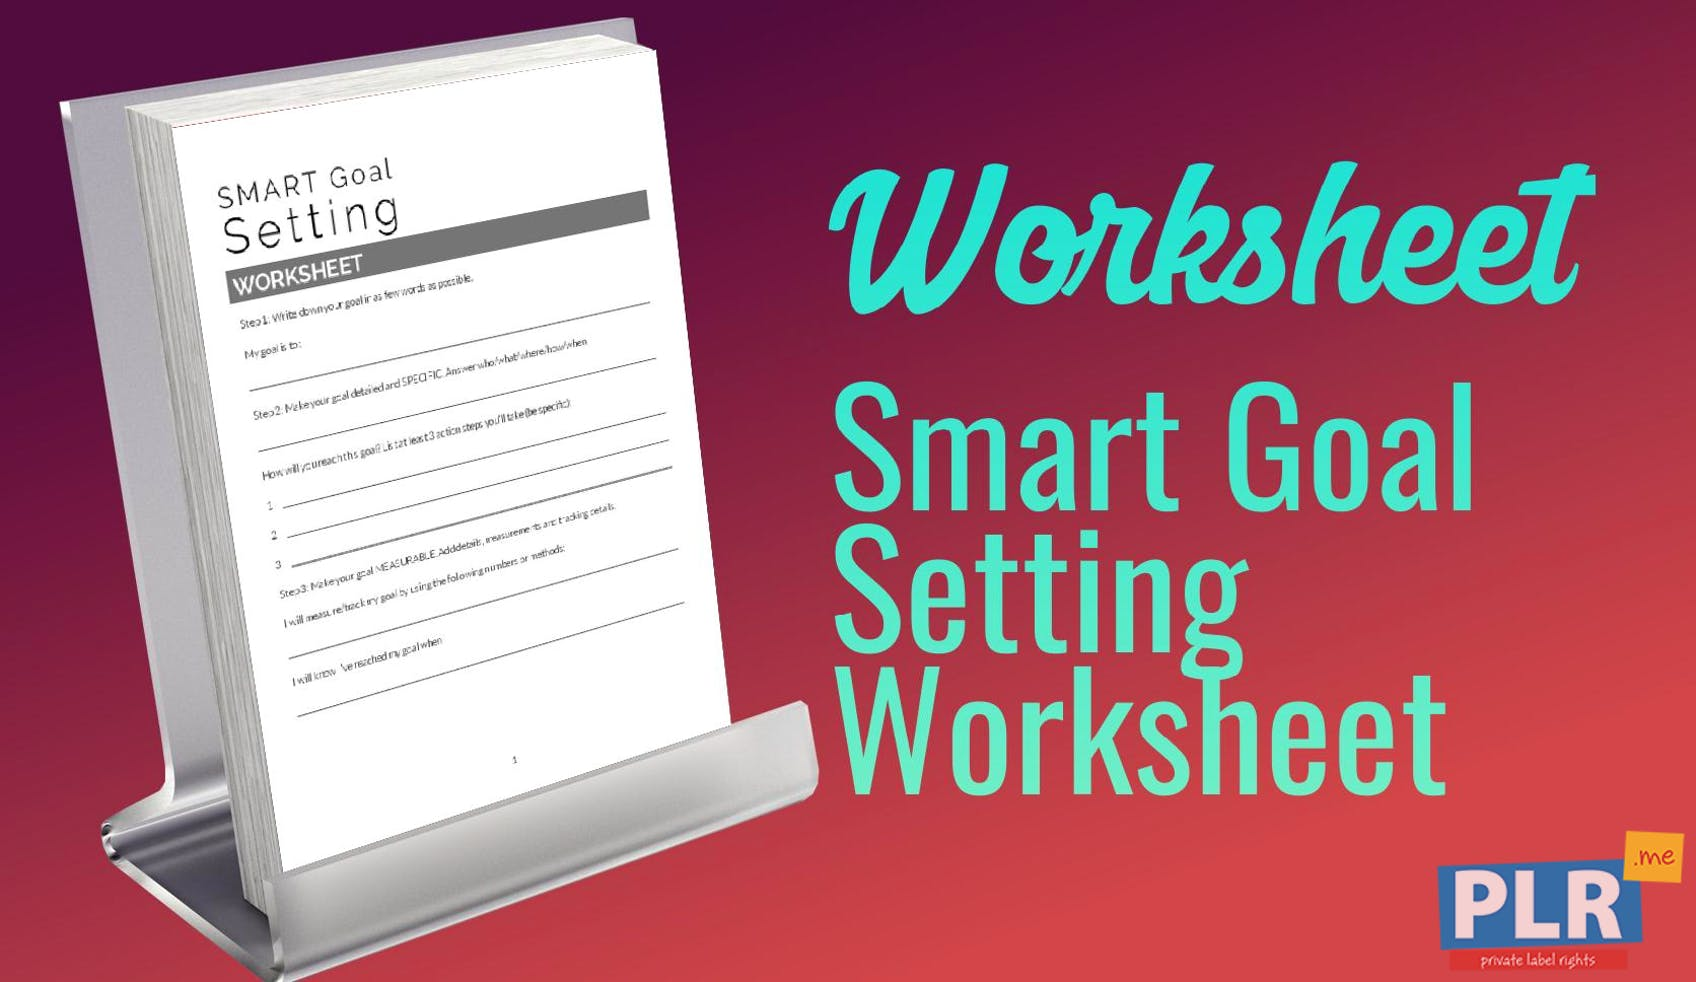 PLR Worksheets - Smart Goal Setting Worksheet - PLR.me